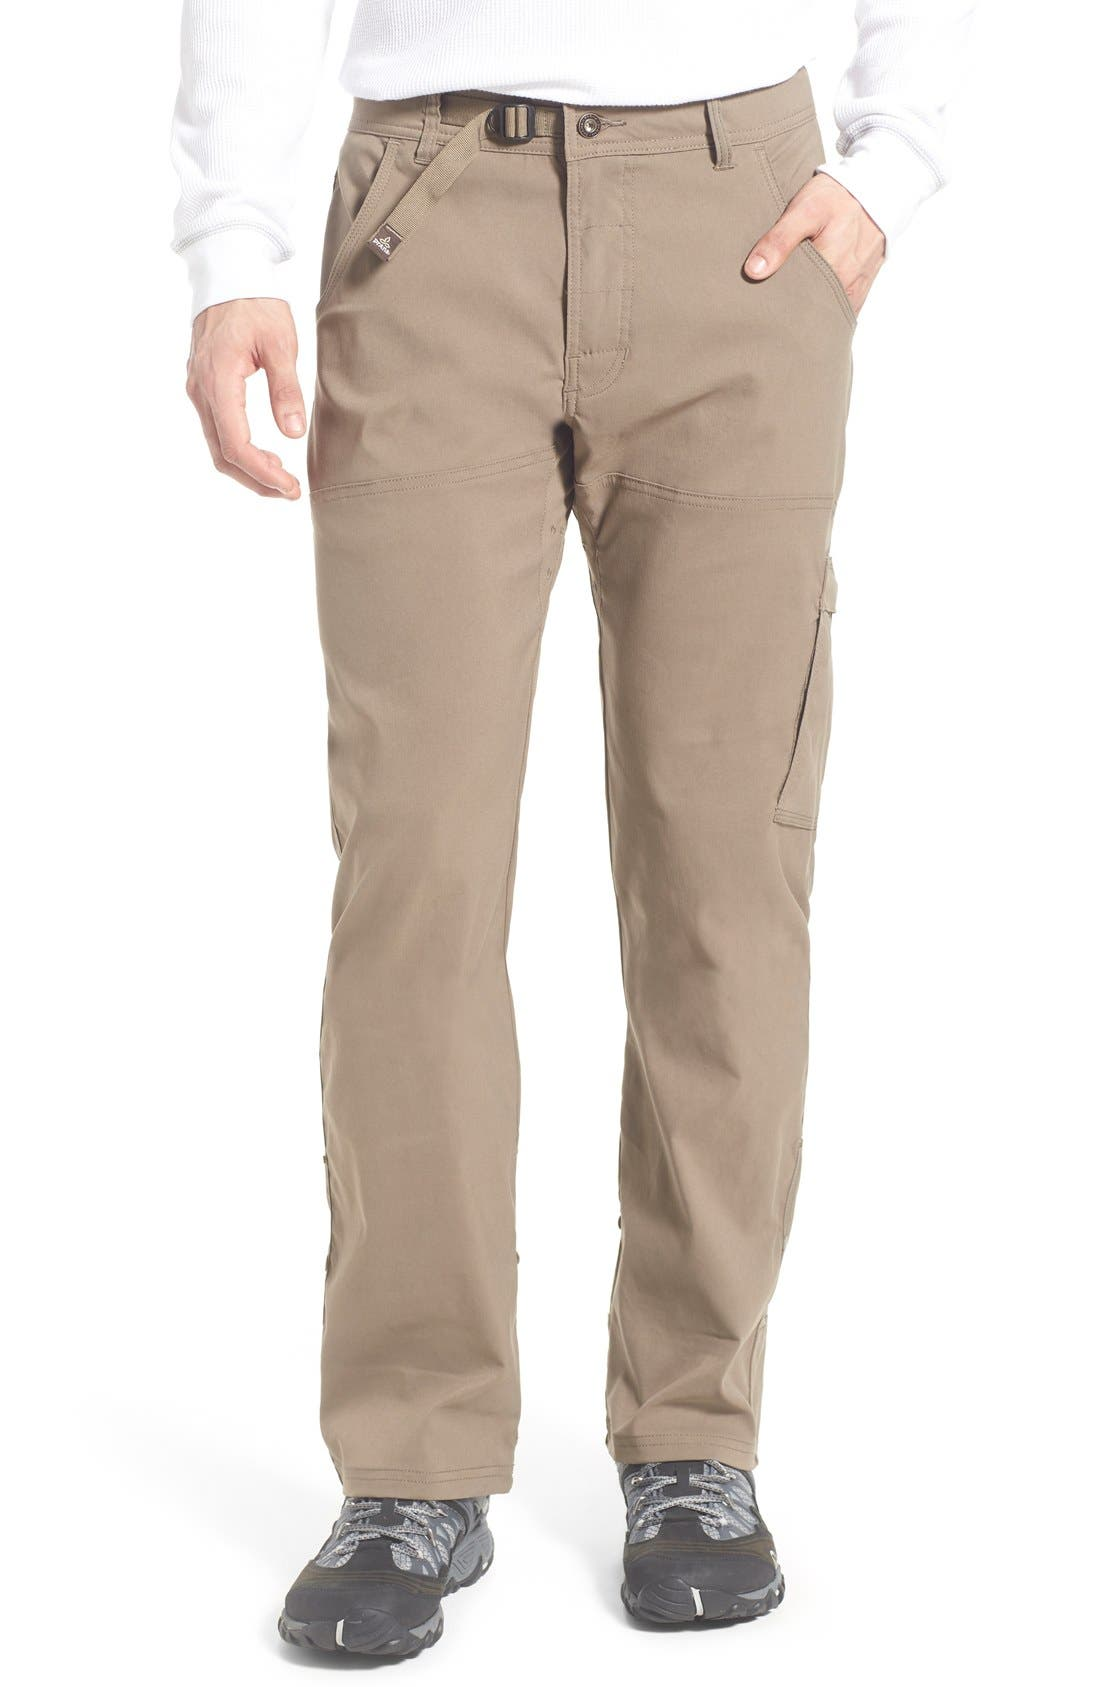 PRANA 'Zion' Stretch Hiking Pants